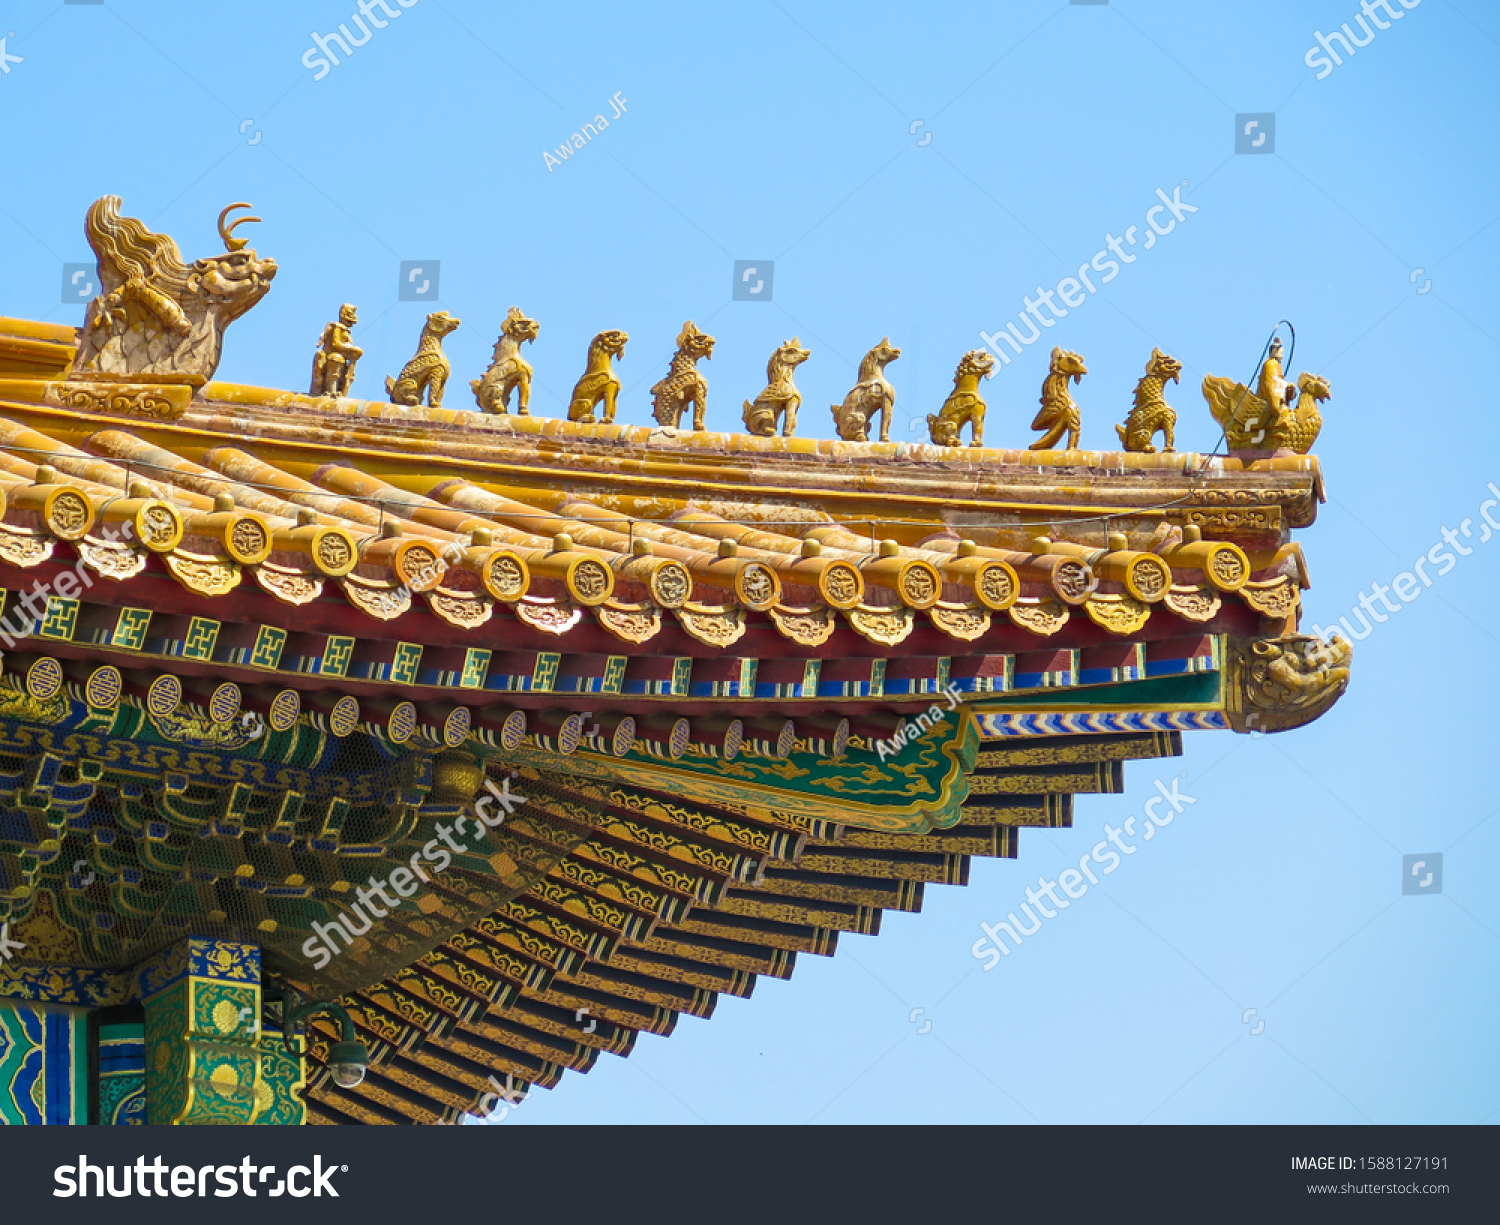 stock-photo-details-of-a-golden-traditio